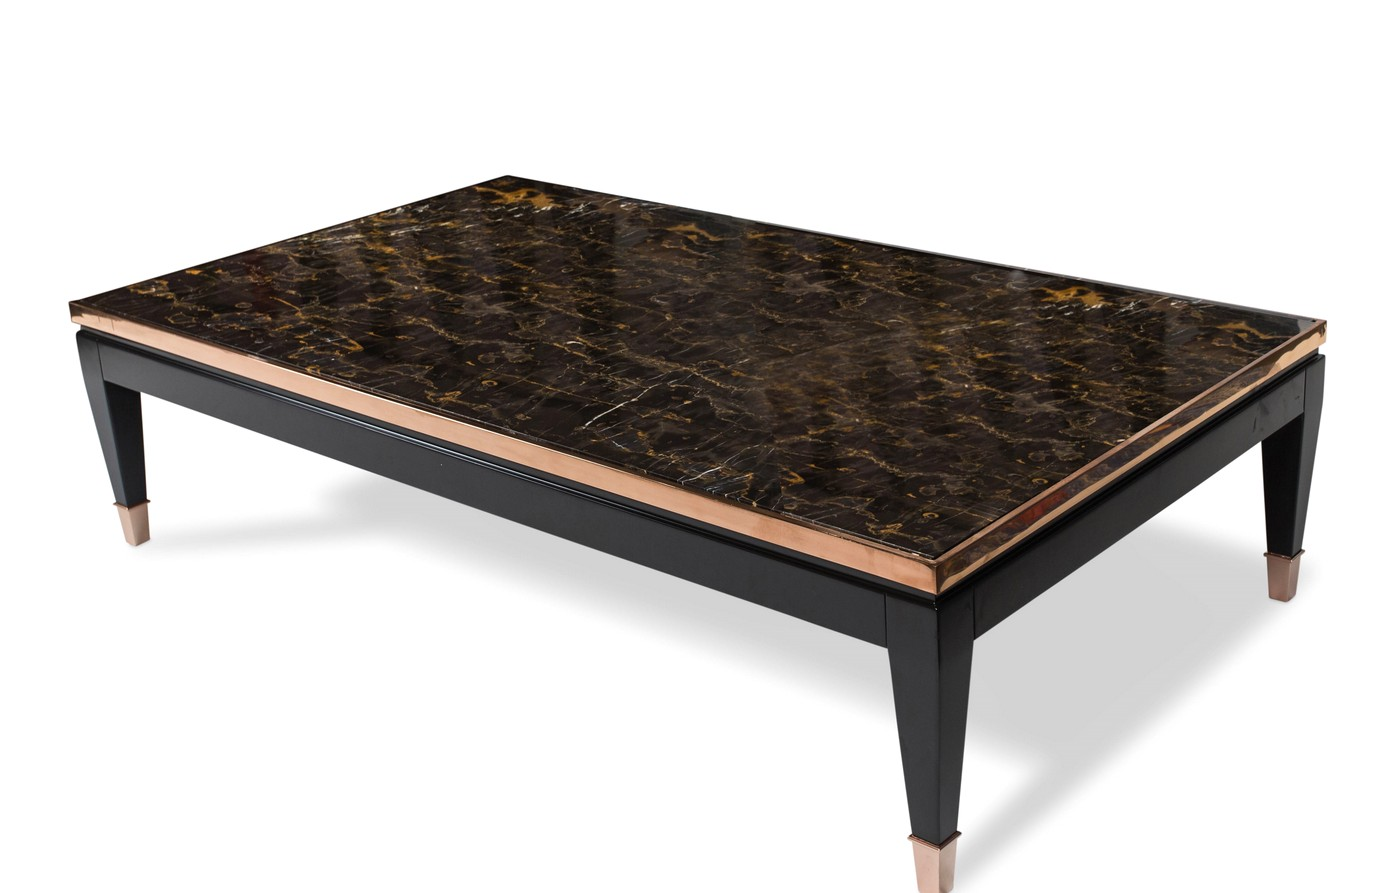 durango luxury tri color coffee table w marble top and rose gold trim. Black Bedroom Furniture Sets. Home Design Ideas